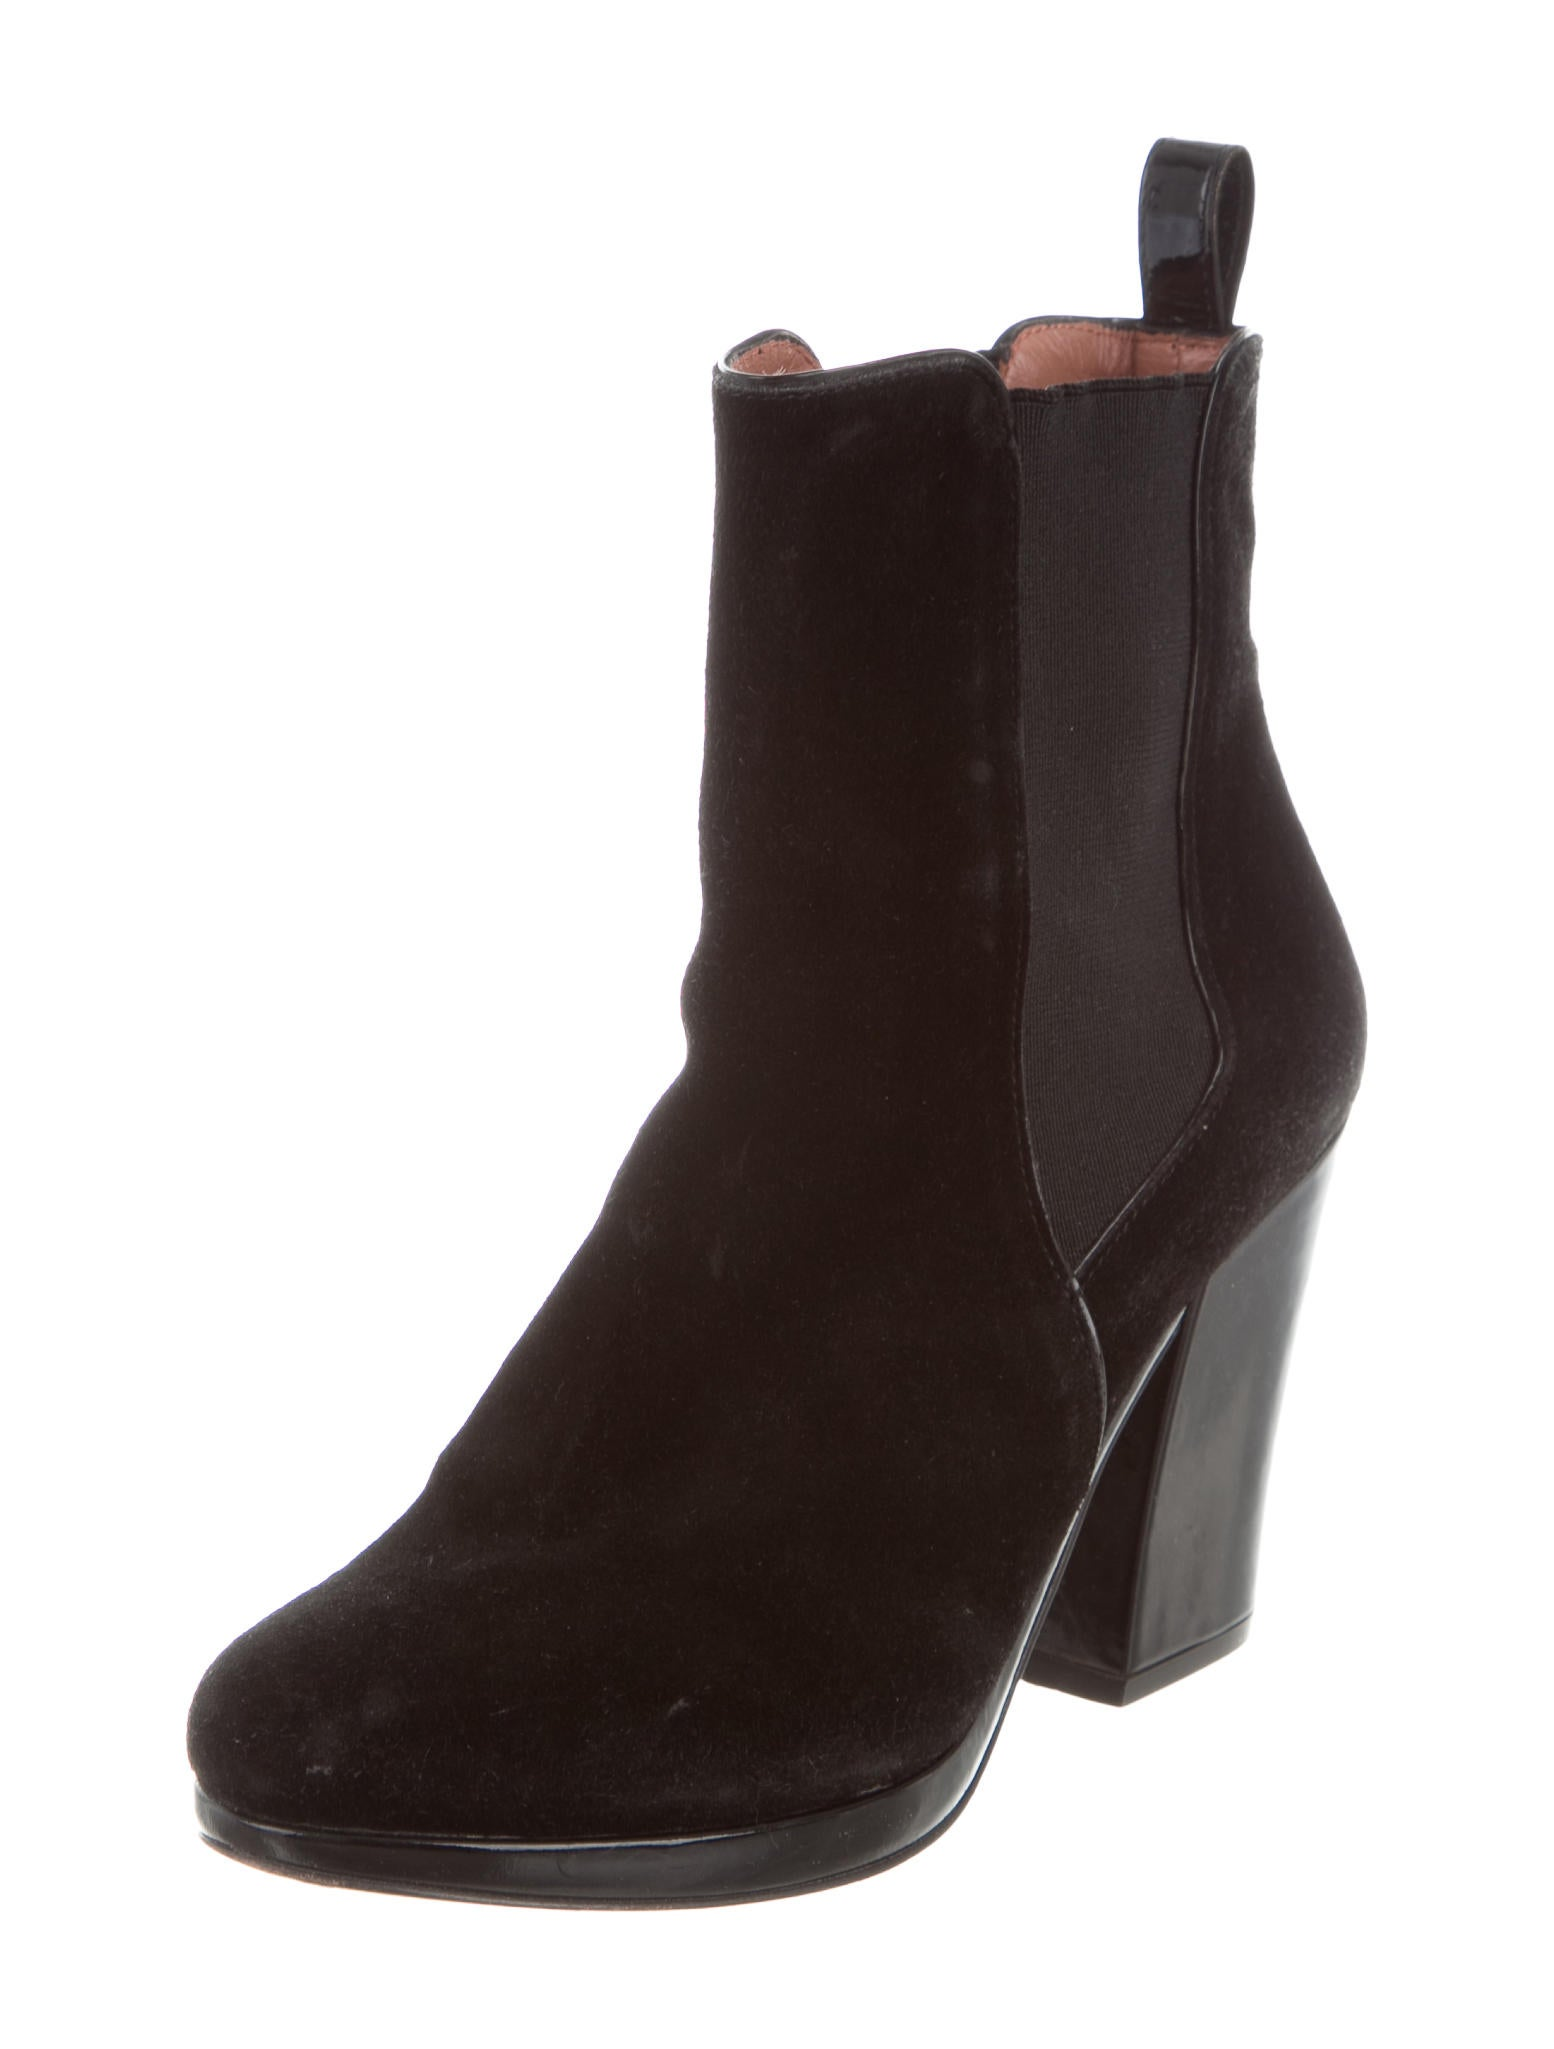 robert clergerie suede ankle boots shoes rog25883